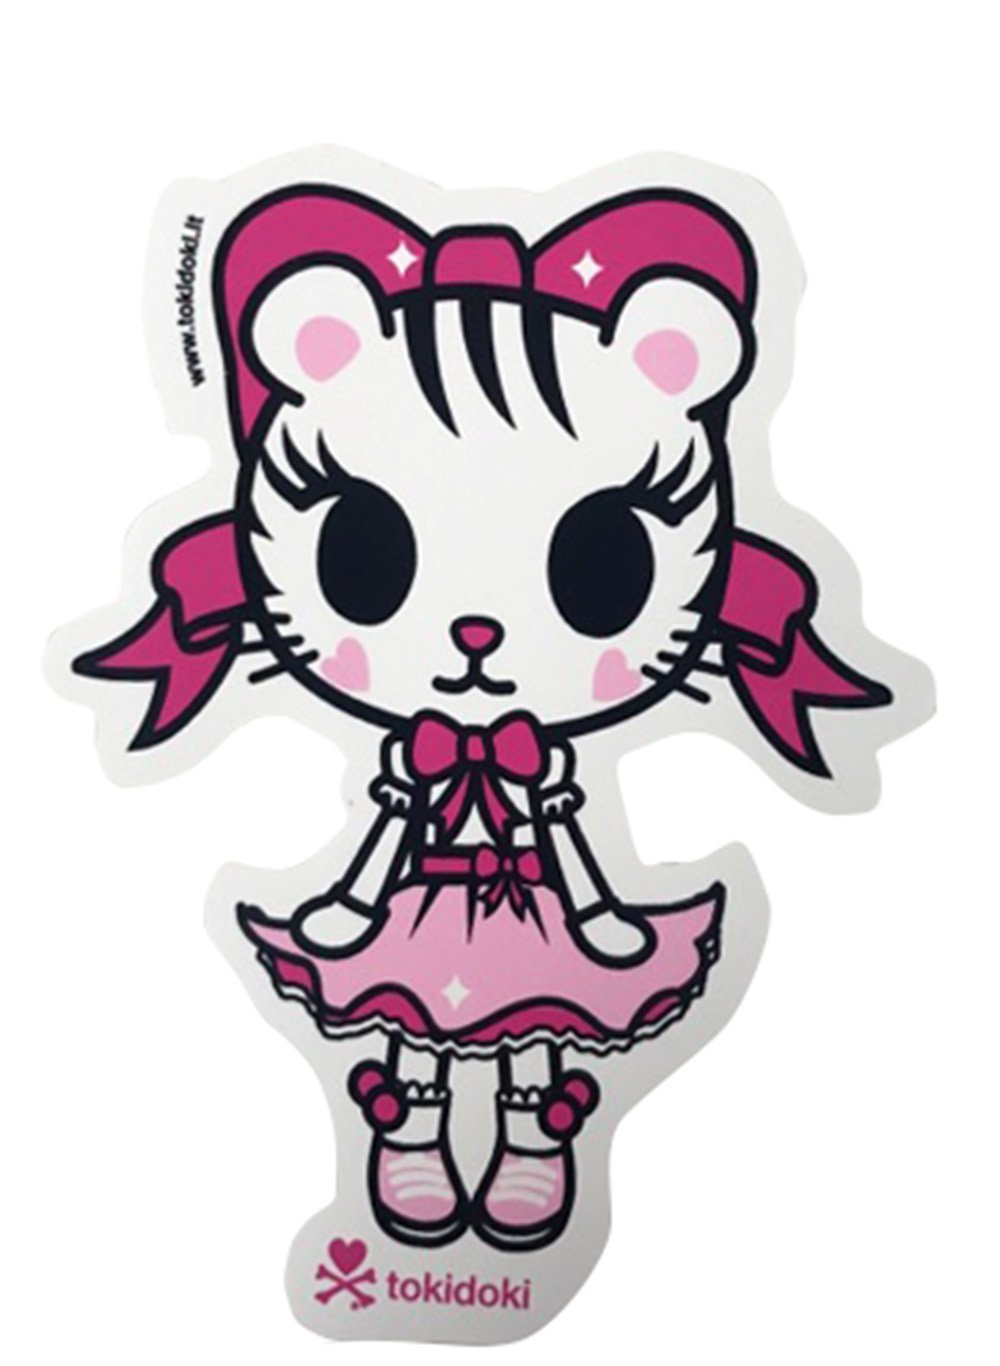 quality design 7f1ed 7c669 Amazon.com: Tokidoki Siberia (White Tiger Girl) Sticker ...